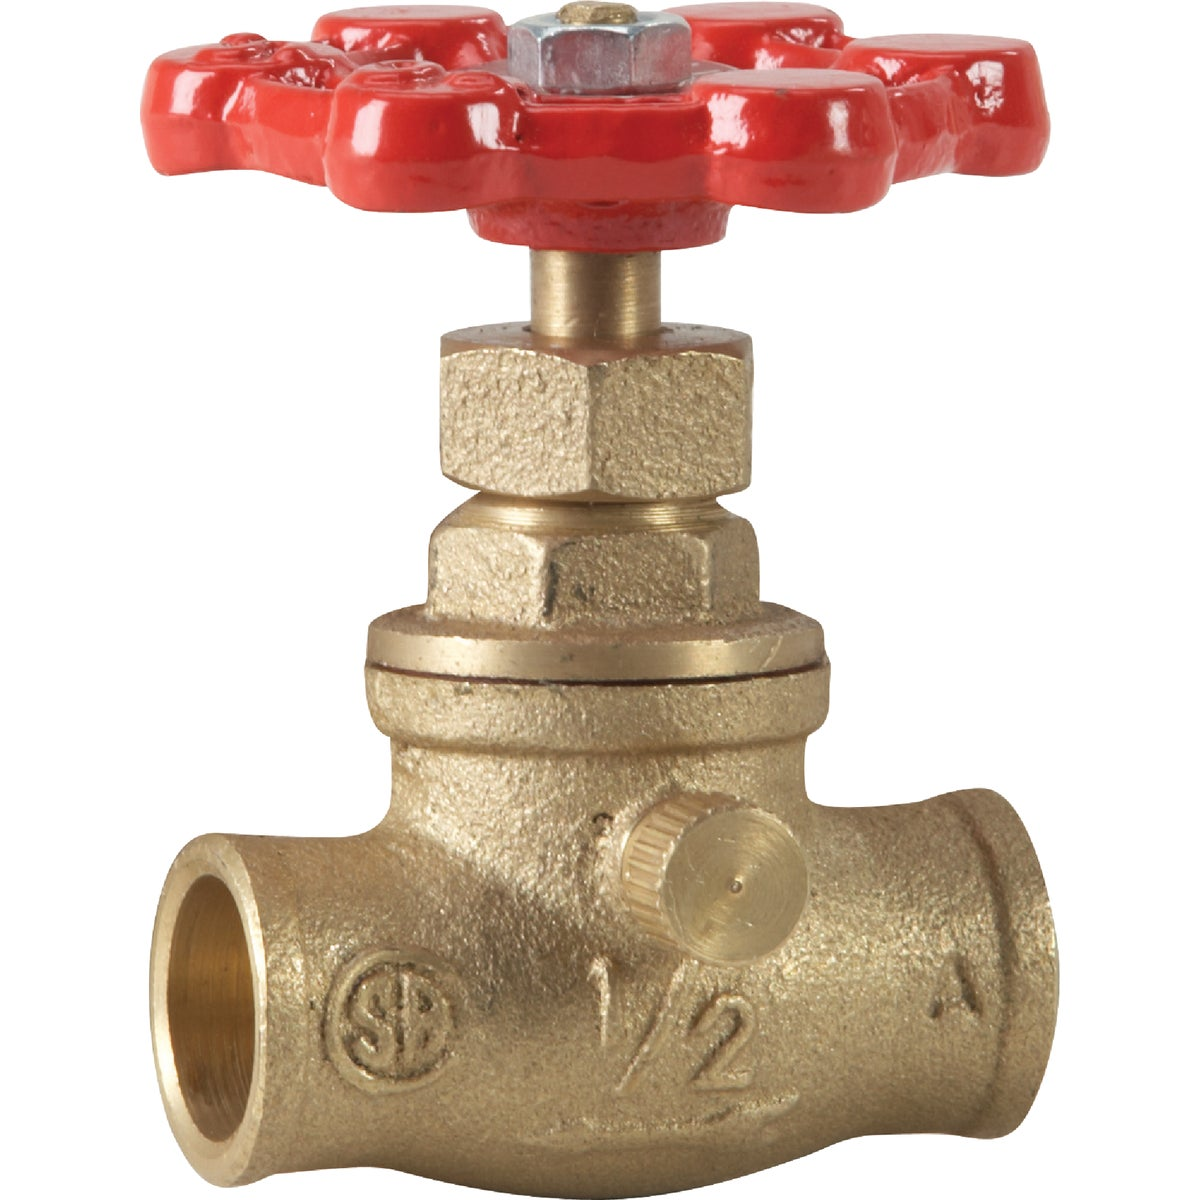 "1/2""SWT STOP/WASTE VALVE - 105-603NL by Mueller B K"